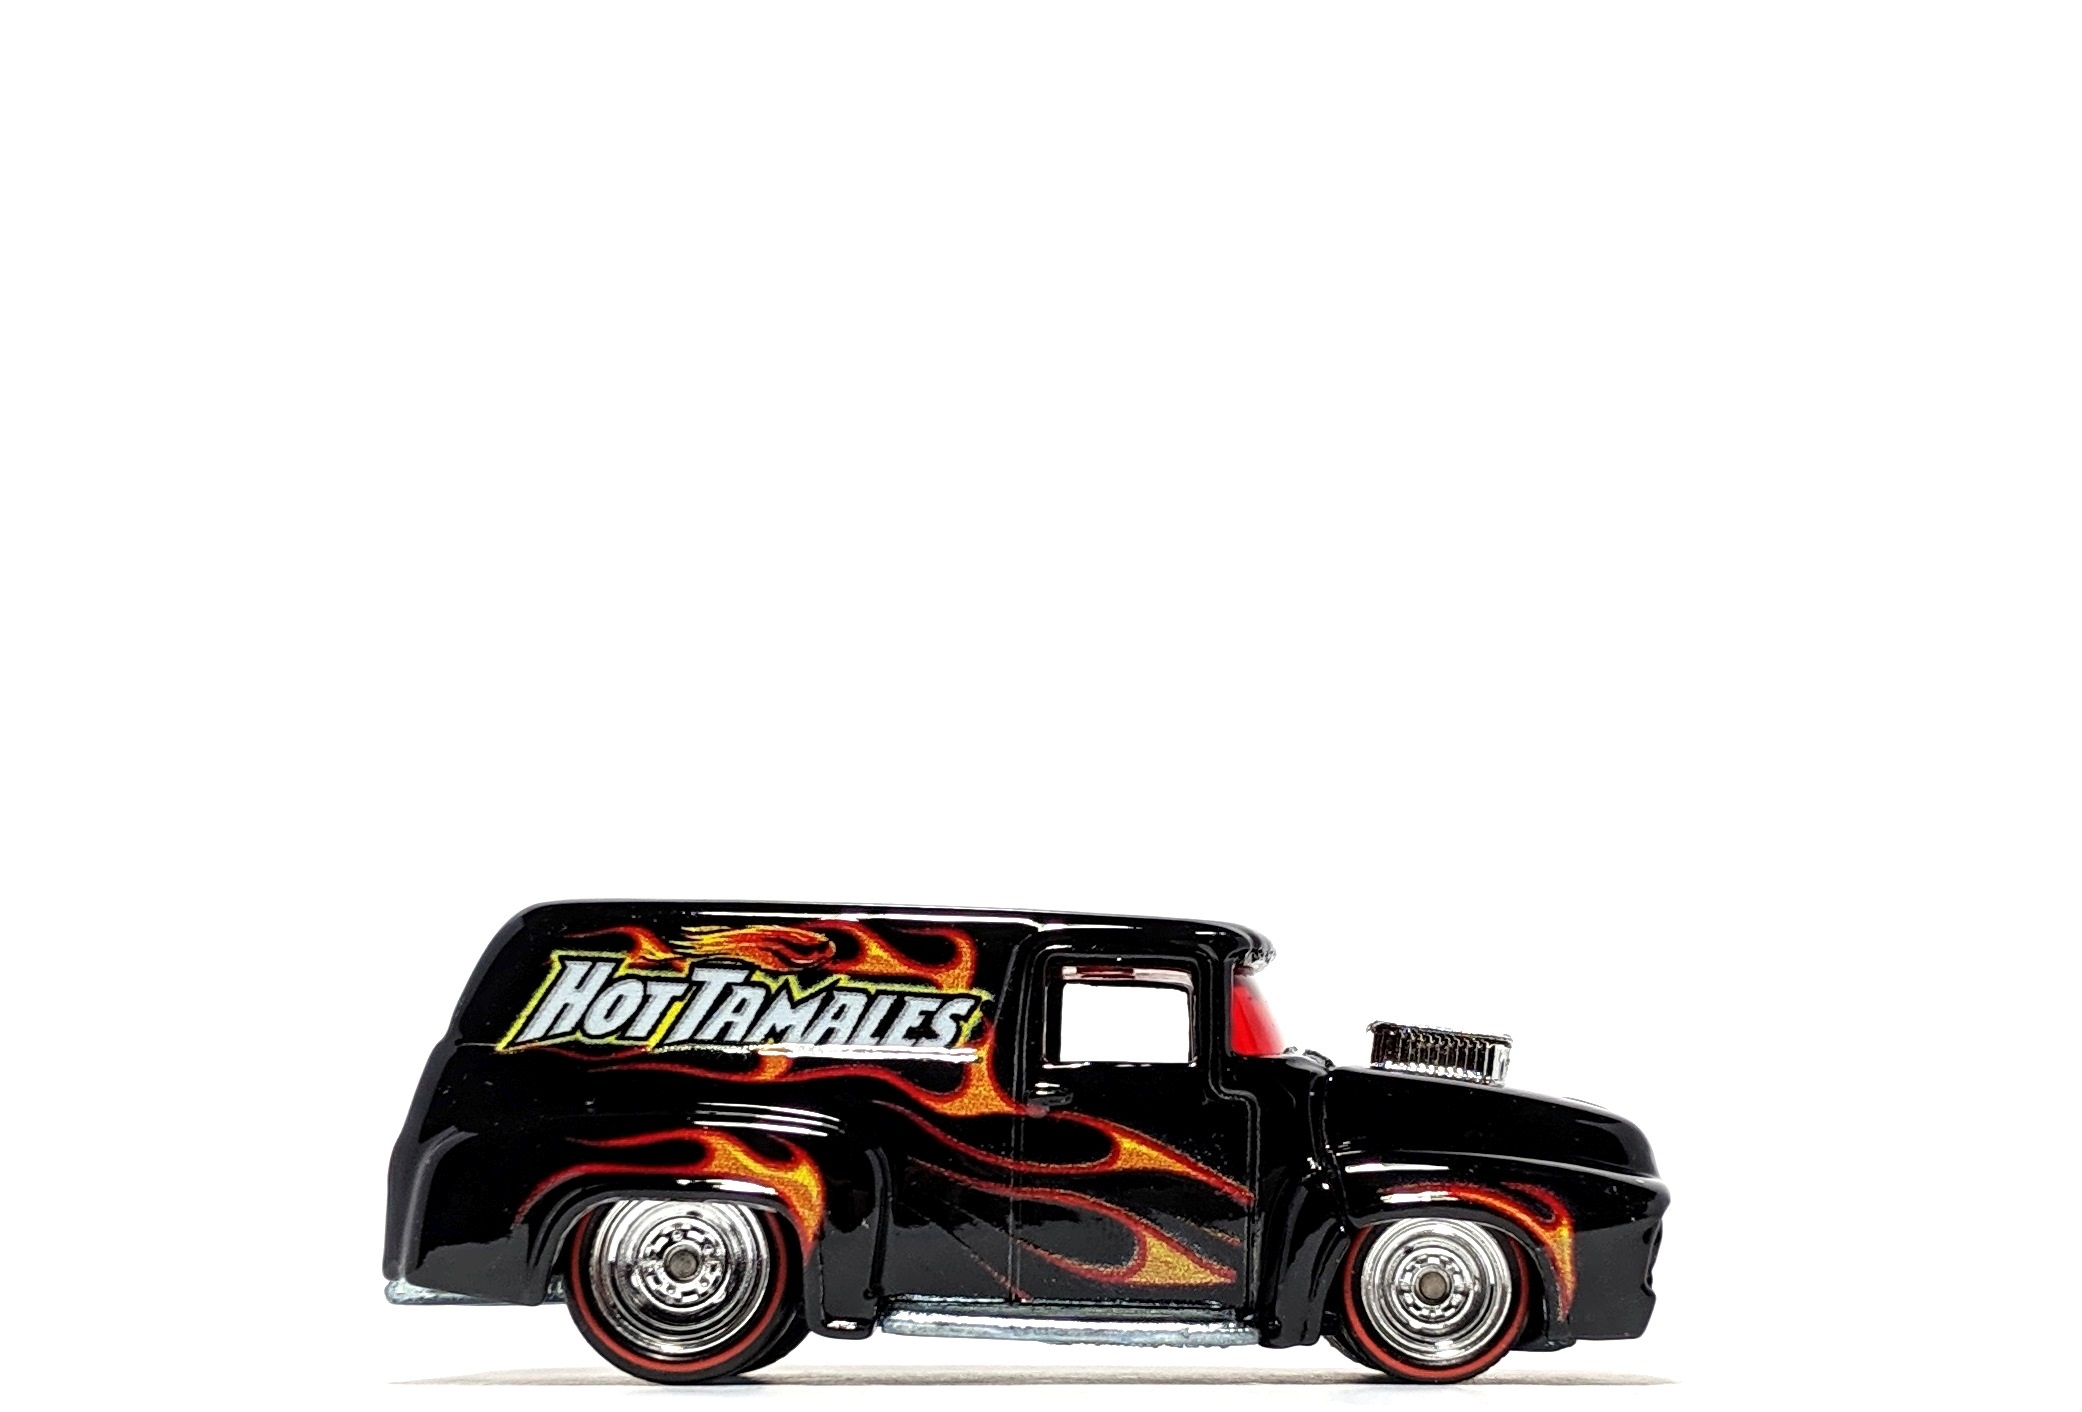 "'56 Ford F-100 Panel ""Hot Tamales"", by Hot Wheels (Pop Culture: Just Born)"